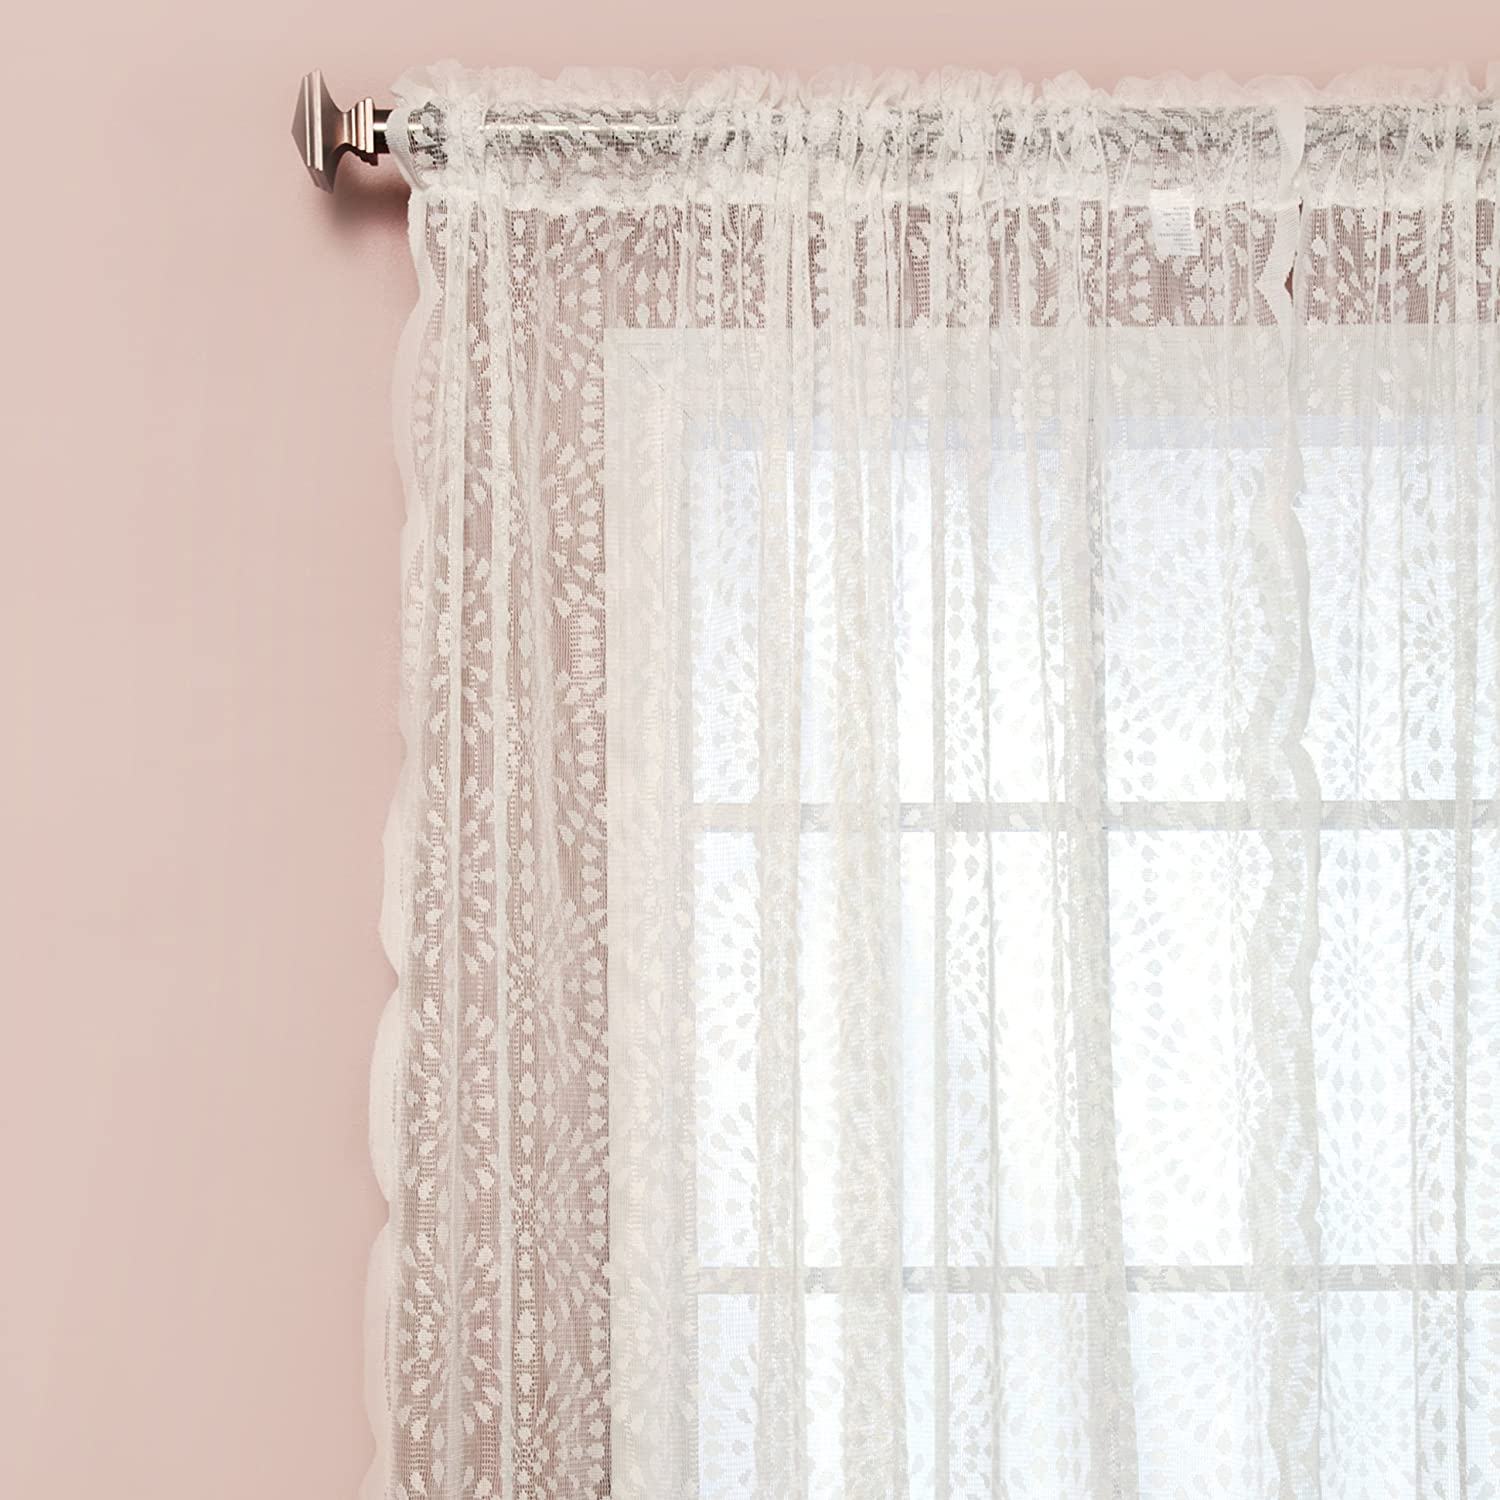 Lace Bedroom Curtains Amazoncom Best Home Fashion Sheer Lace Curtains Rod Pocket